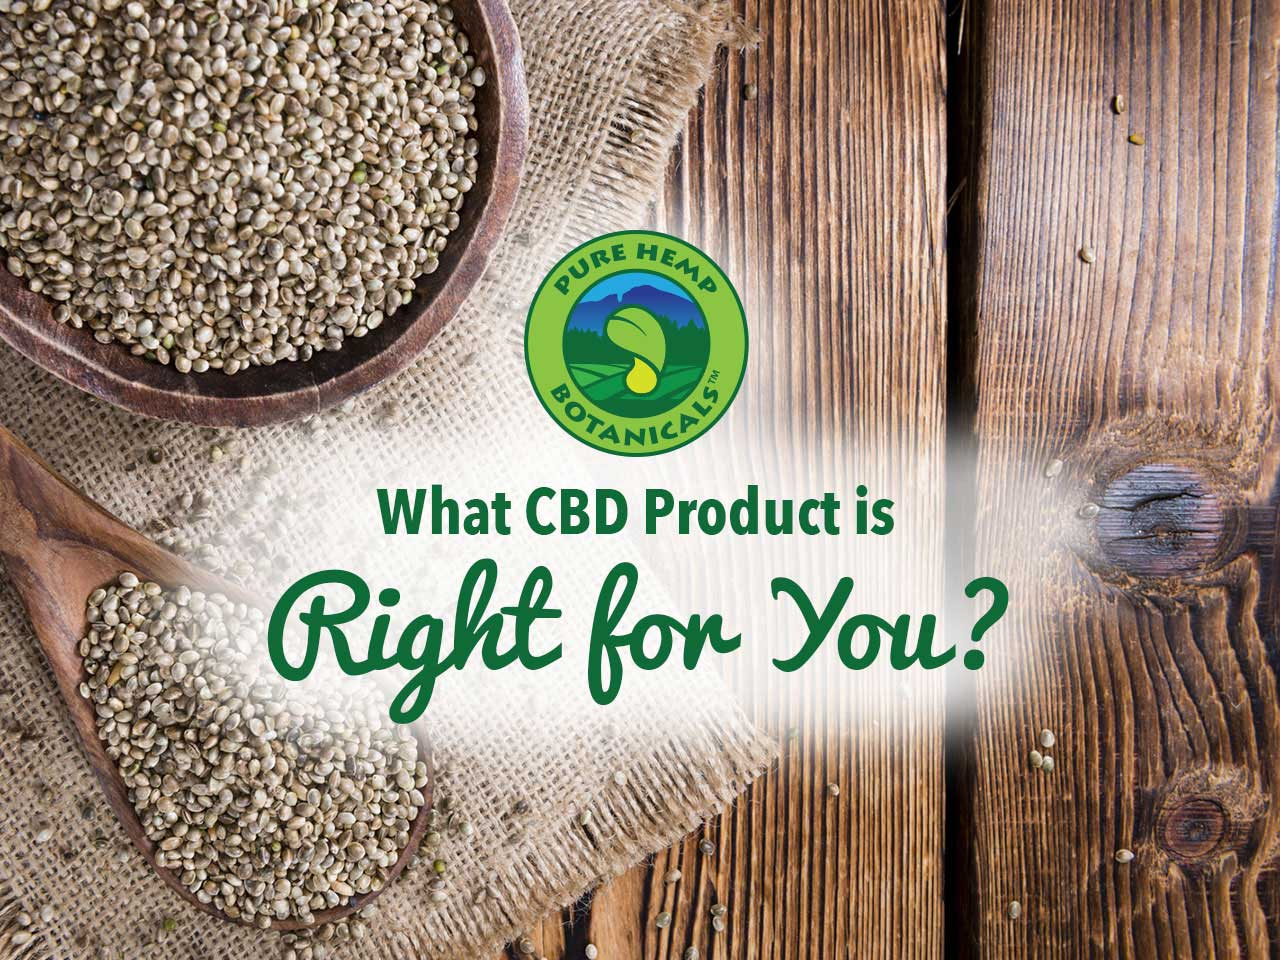 What CBD Oil Product is Right for You?